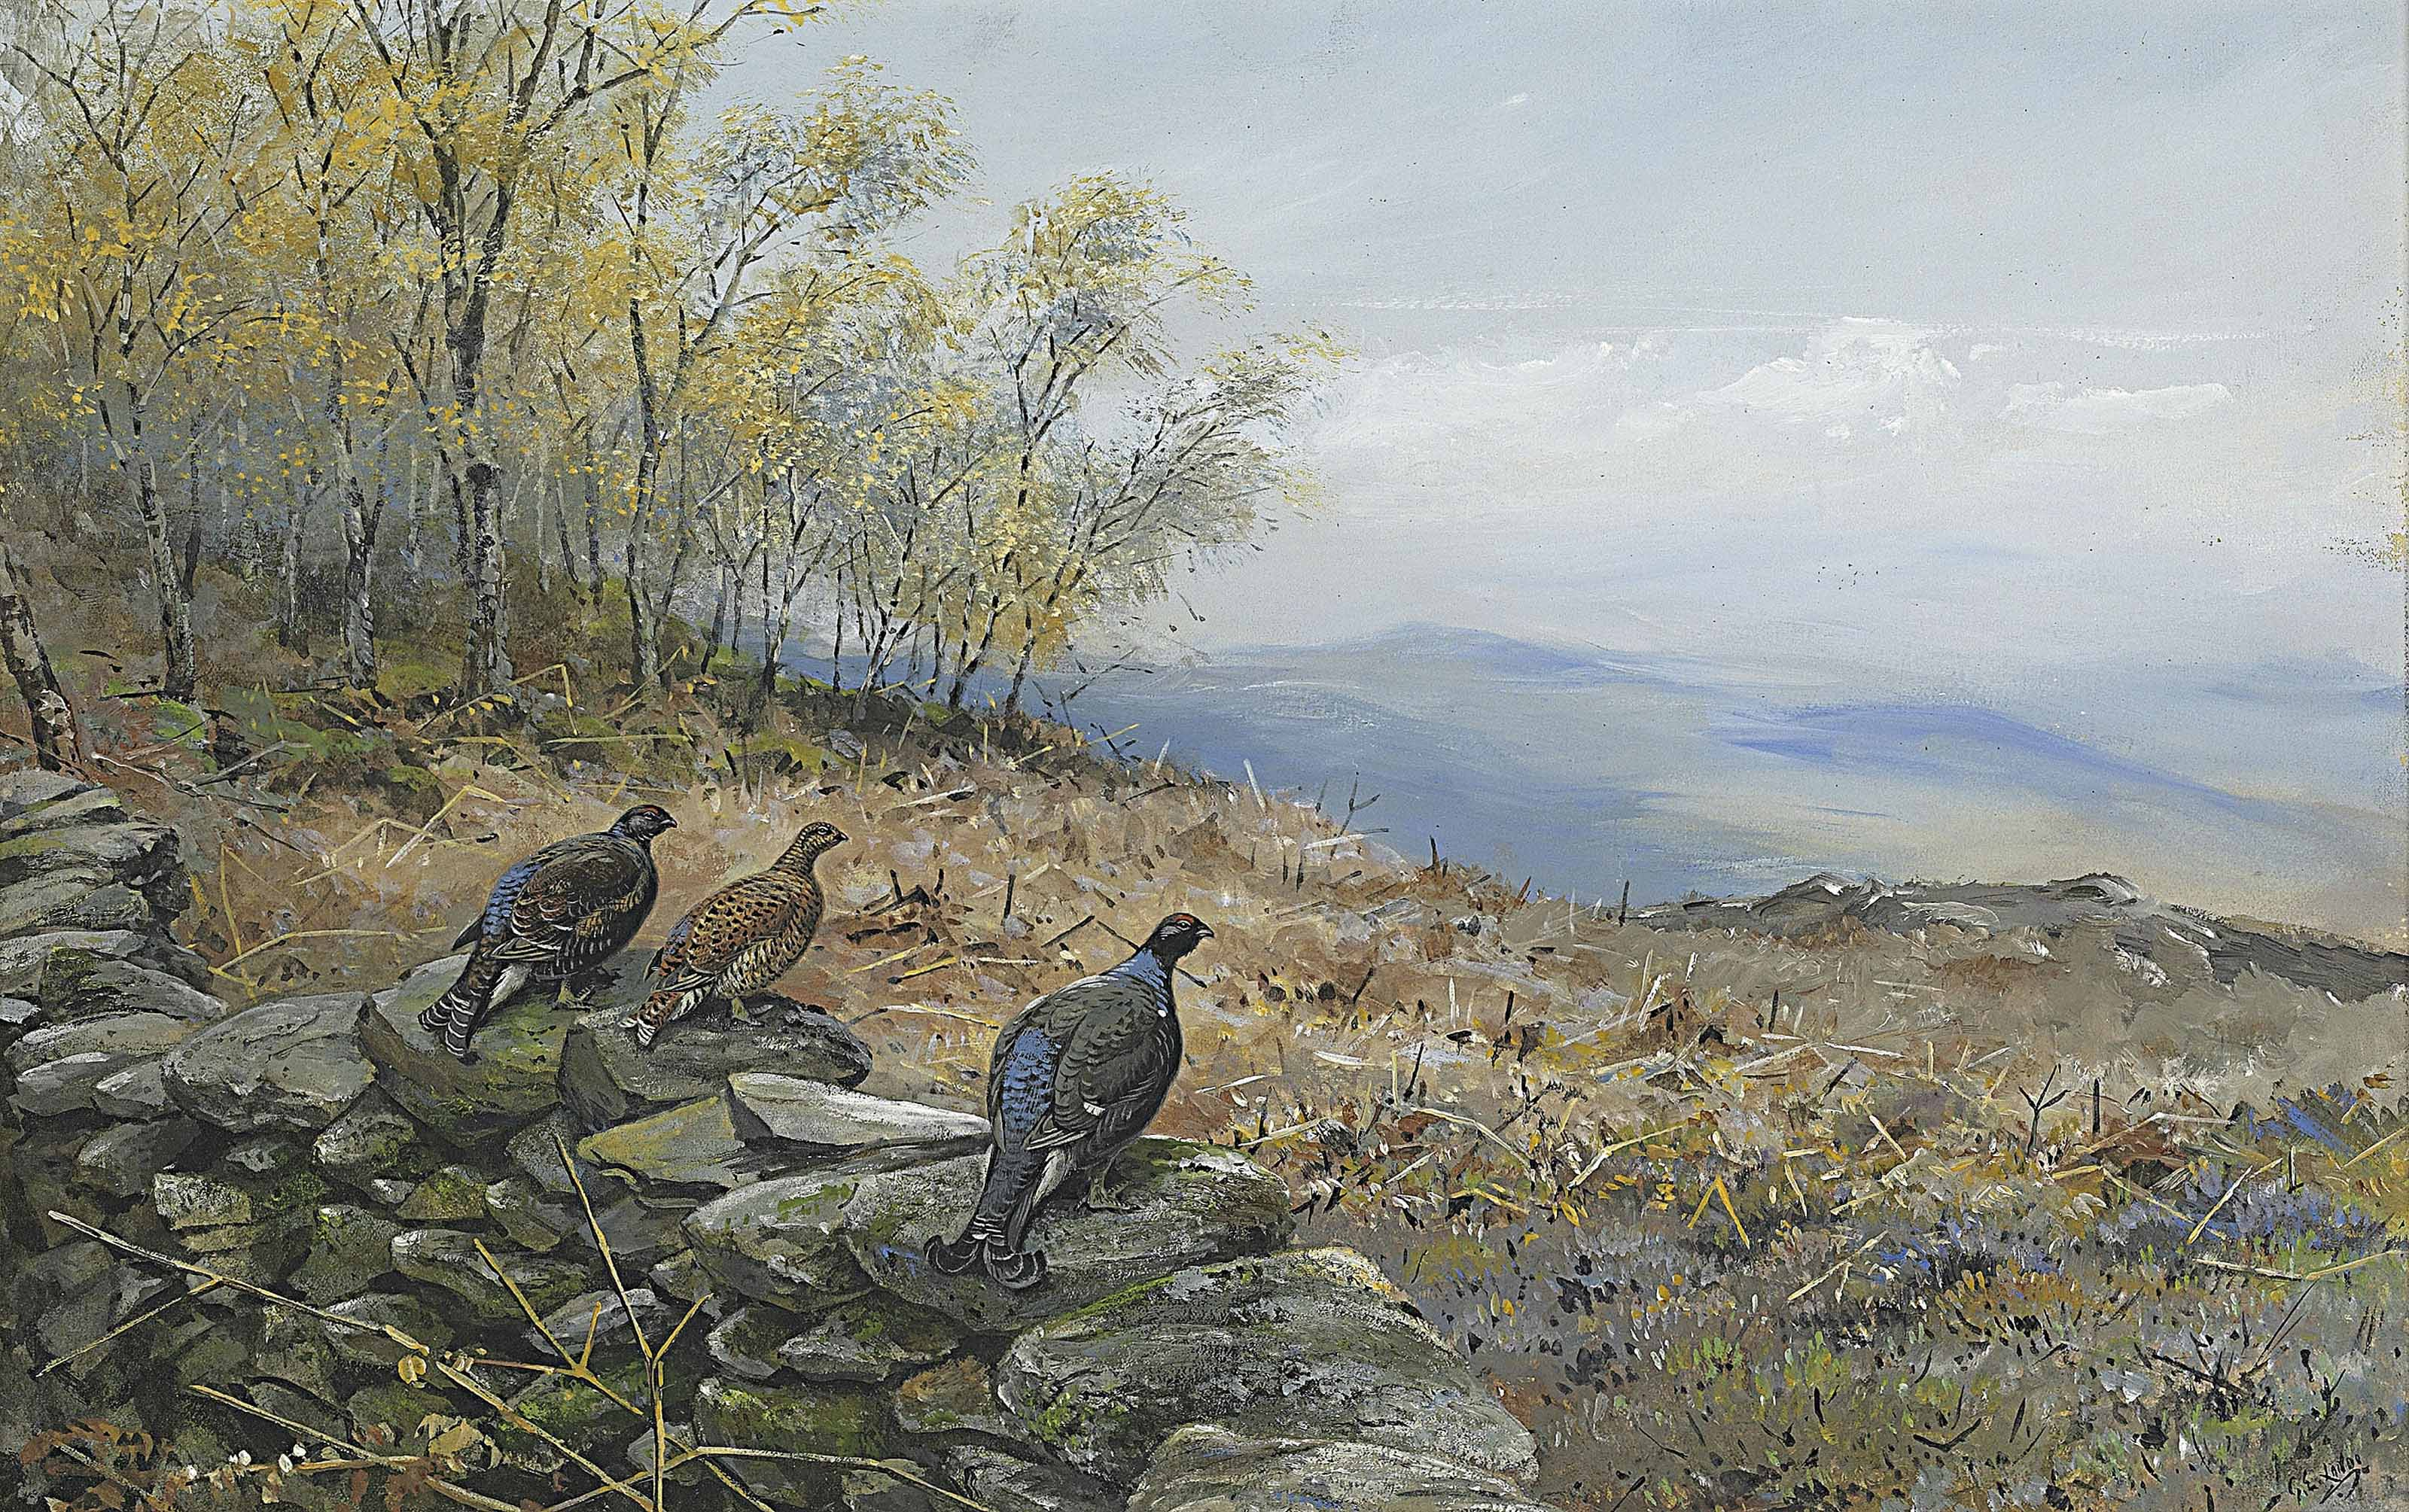 Blackgame perched on a drystone wall